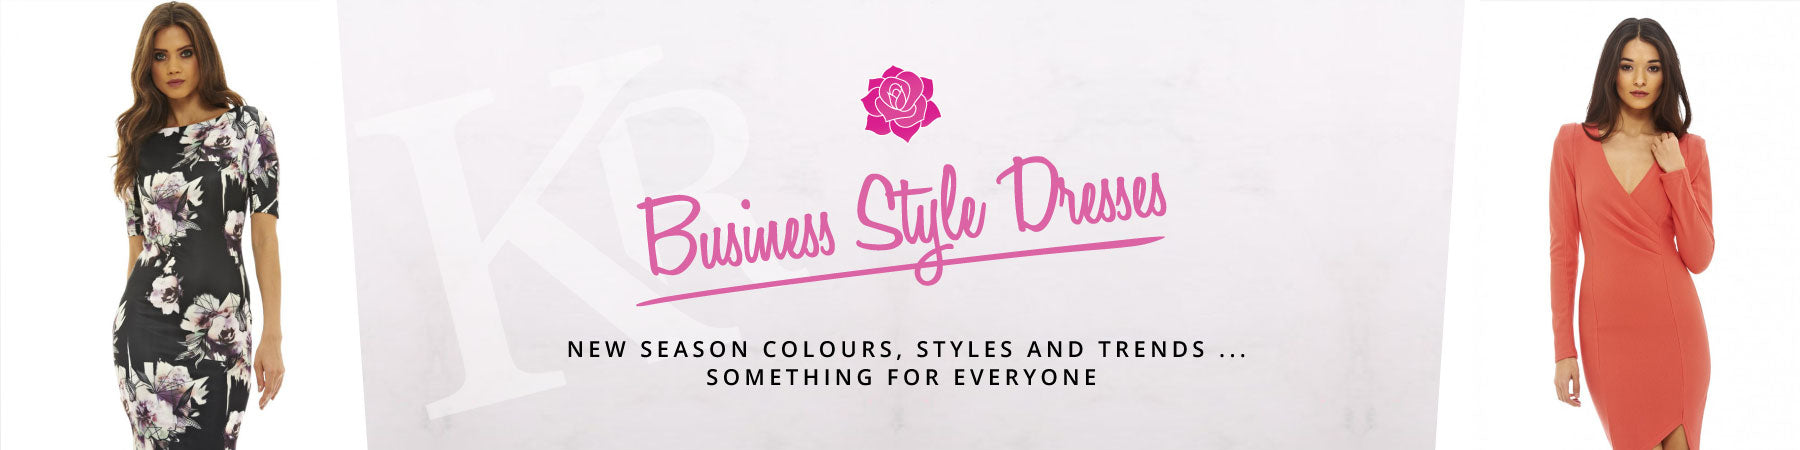 Business Style Dresses